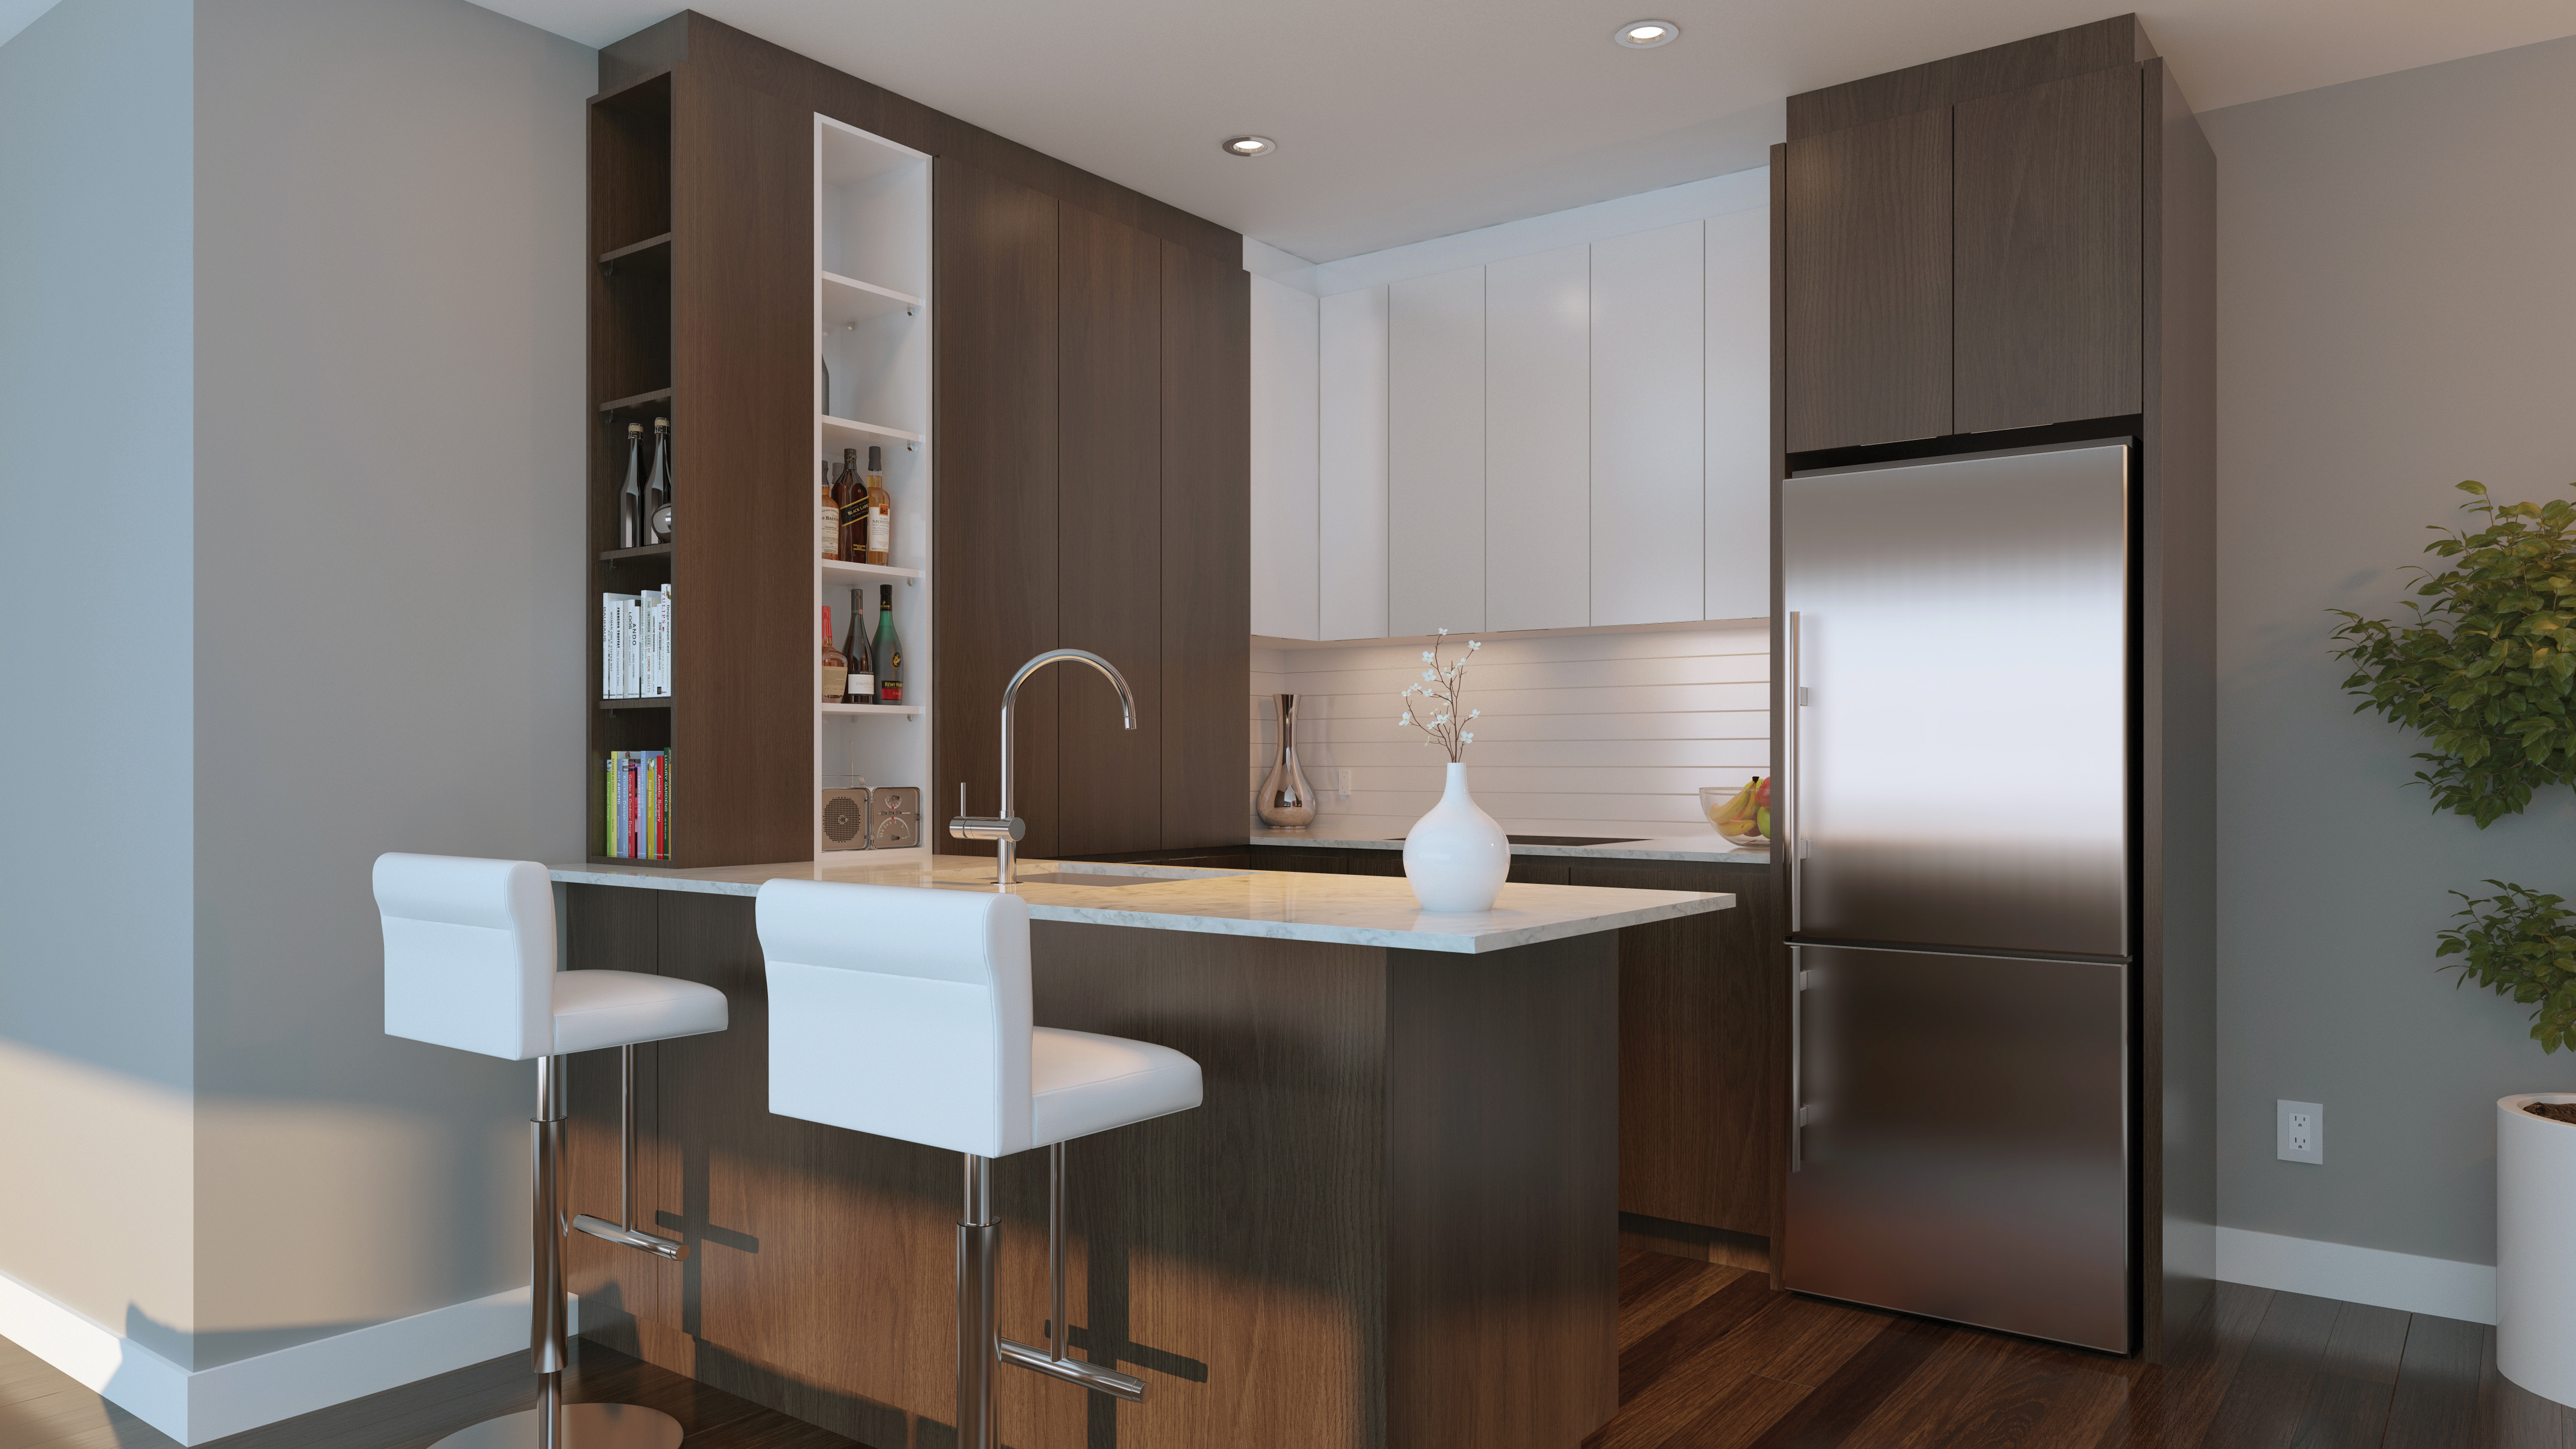 kitchen design montreal le beaumont condo ndg mcgill immobilier 990